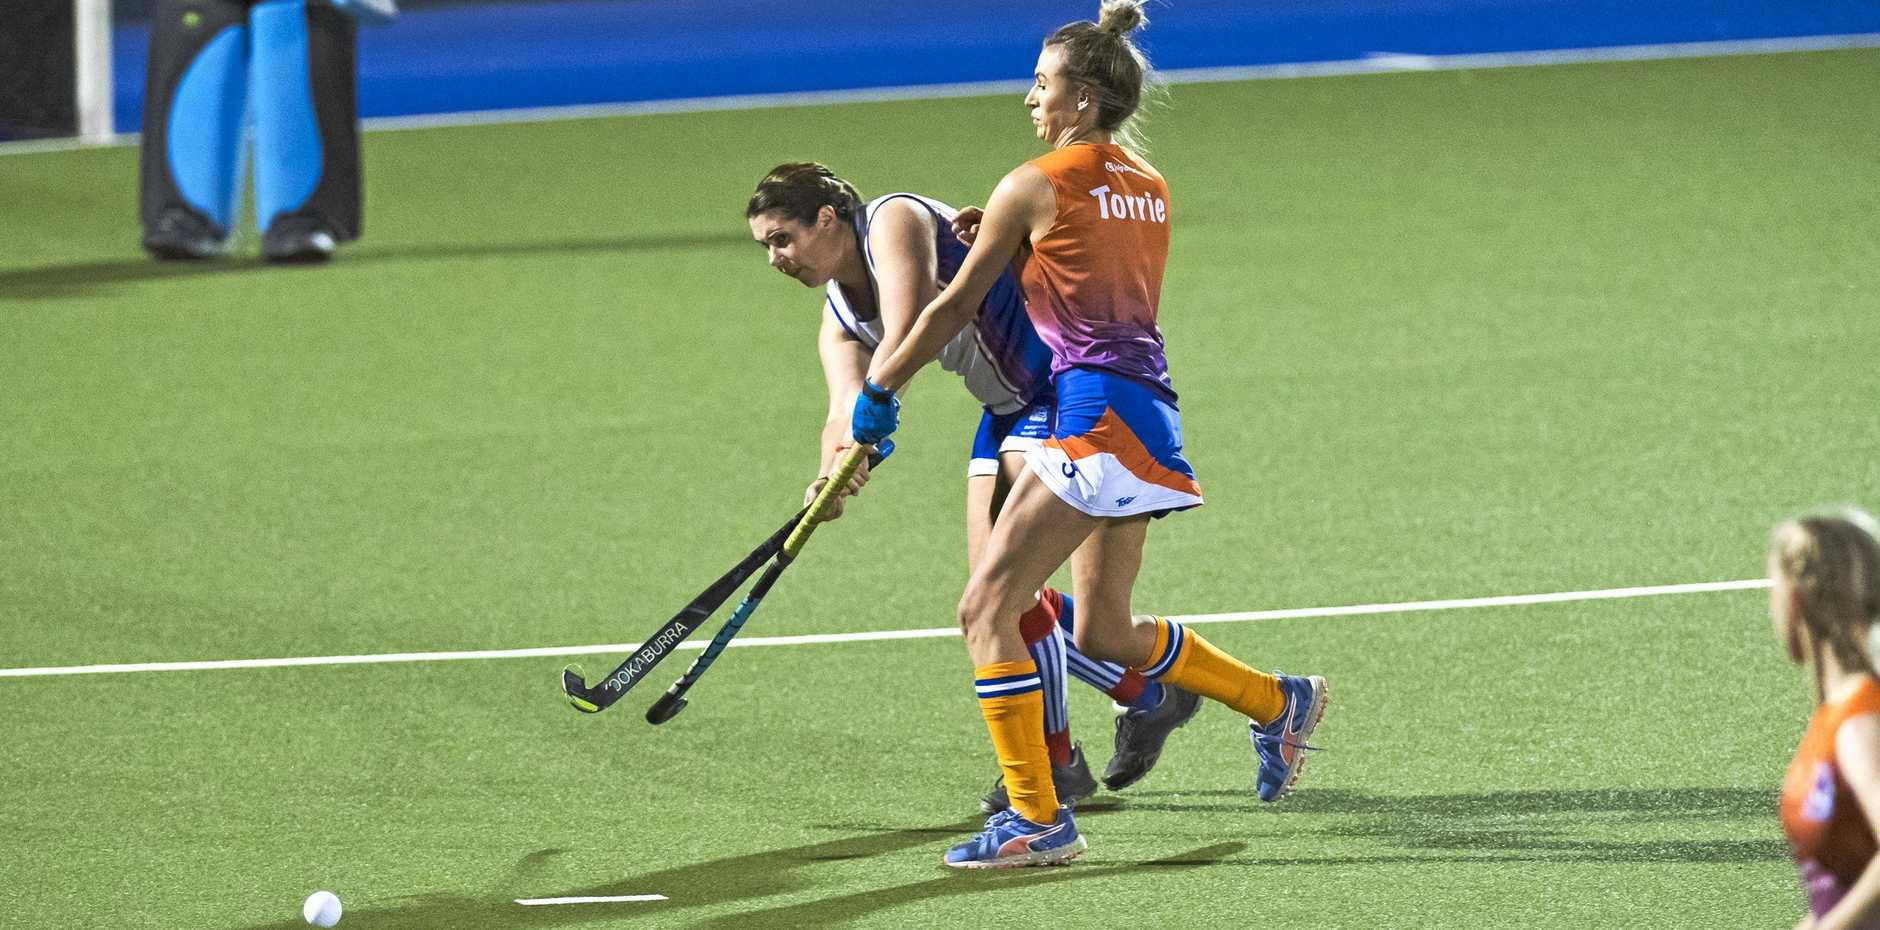 PRESSURE ON: Torrie Thies applies pressure on the ball during a match against Rangeville.